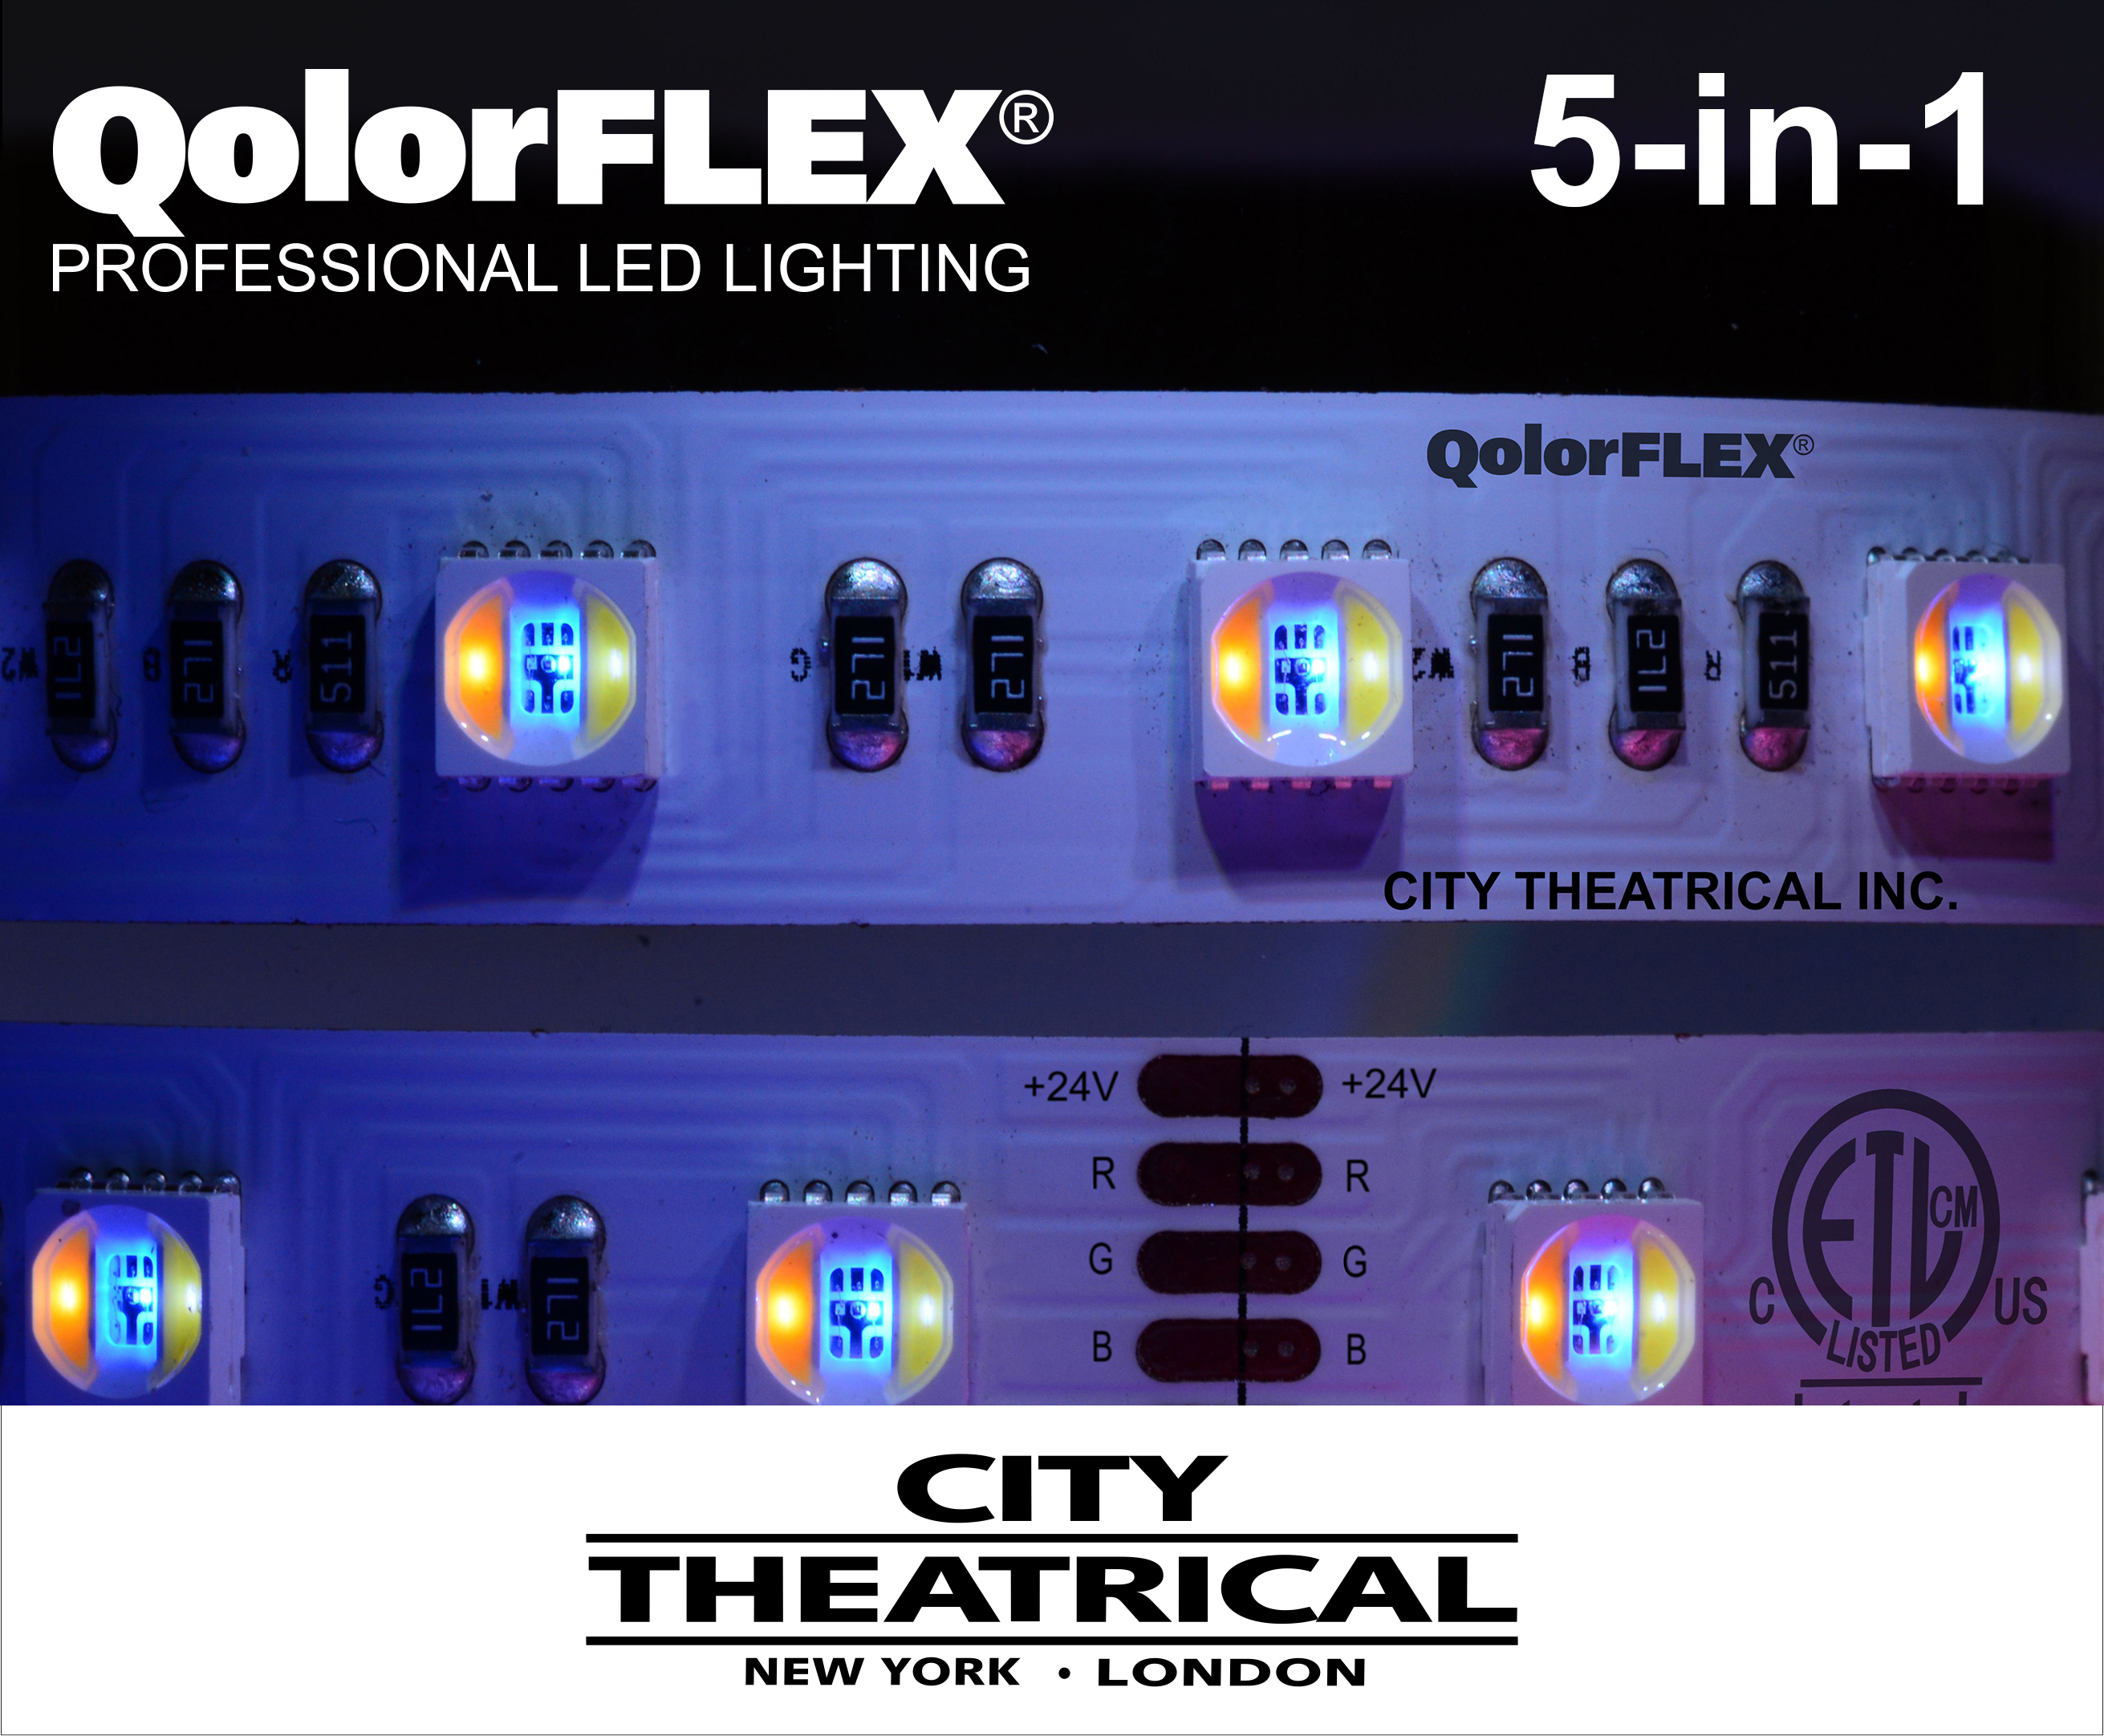 QolorFLEX 5-in-1 LED Tape photo 2